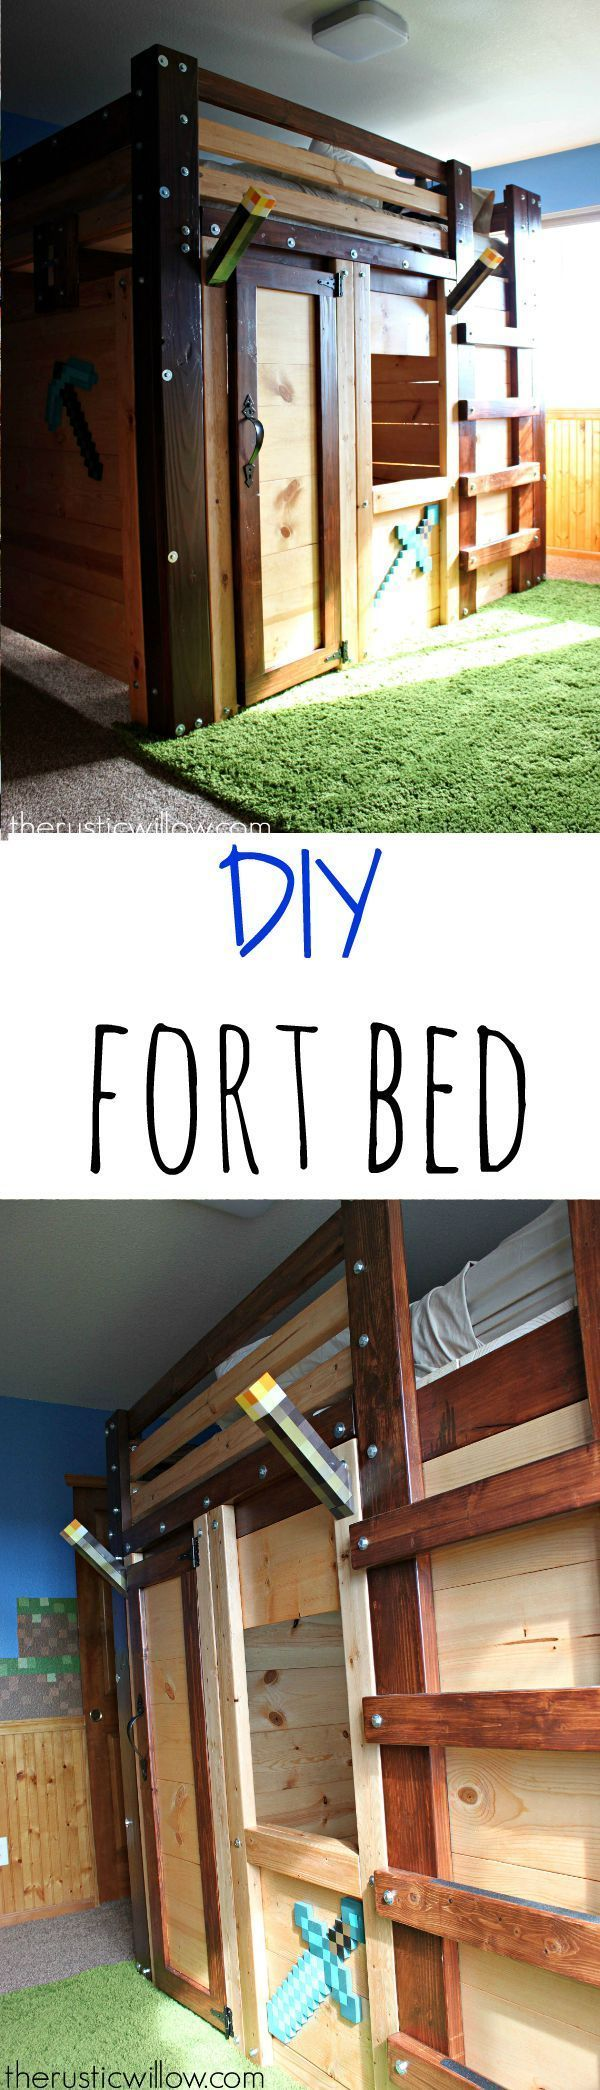 DIY Fort Bed for a children's dream room | http://therusticwillow.com